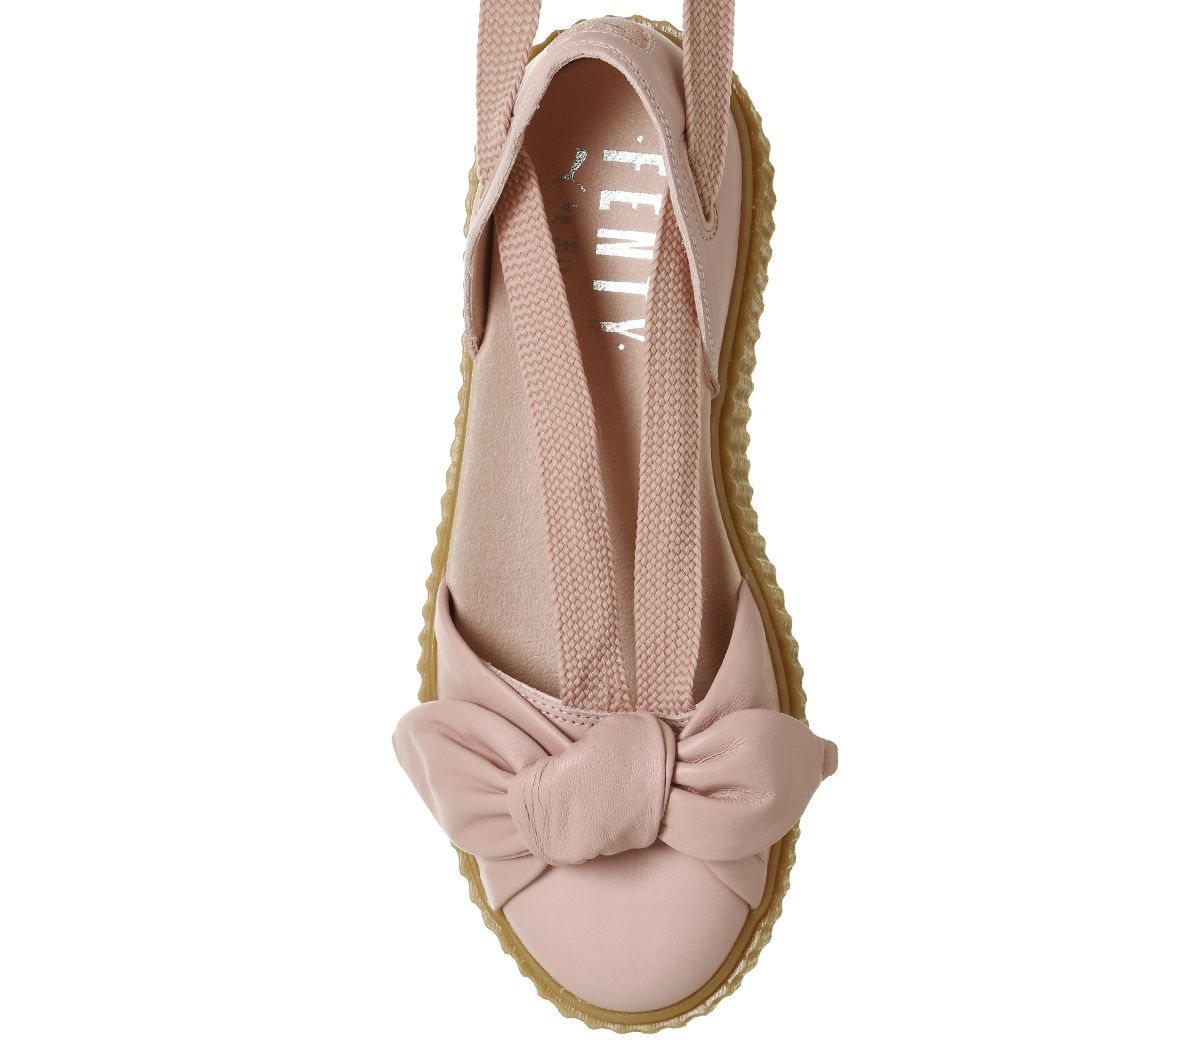 Womens-Puma-Creeper-Ballet-Lace-Pink-Fenty-Sandals thumbnail 18